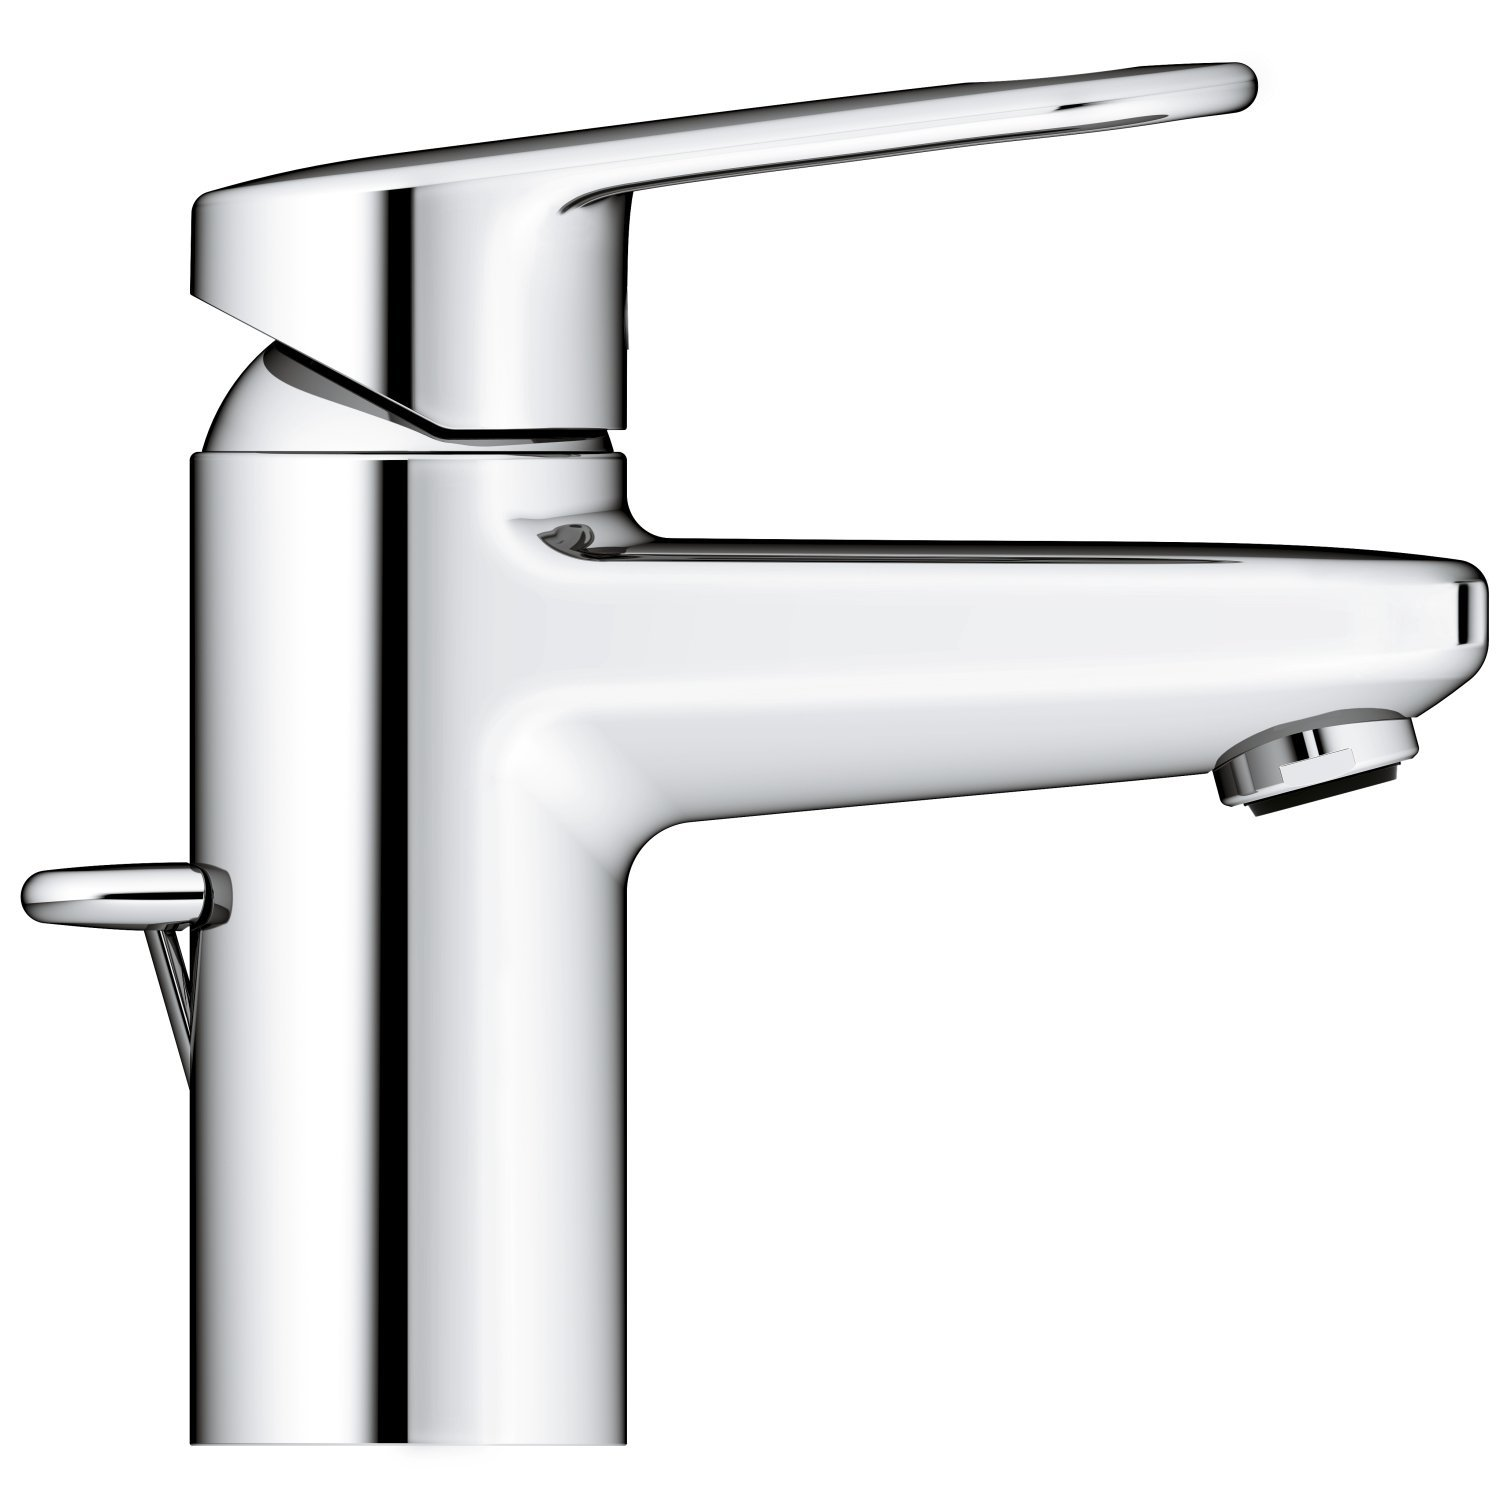 Grohe Robinet Baignoire Robinet Grohe